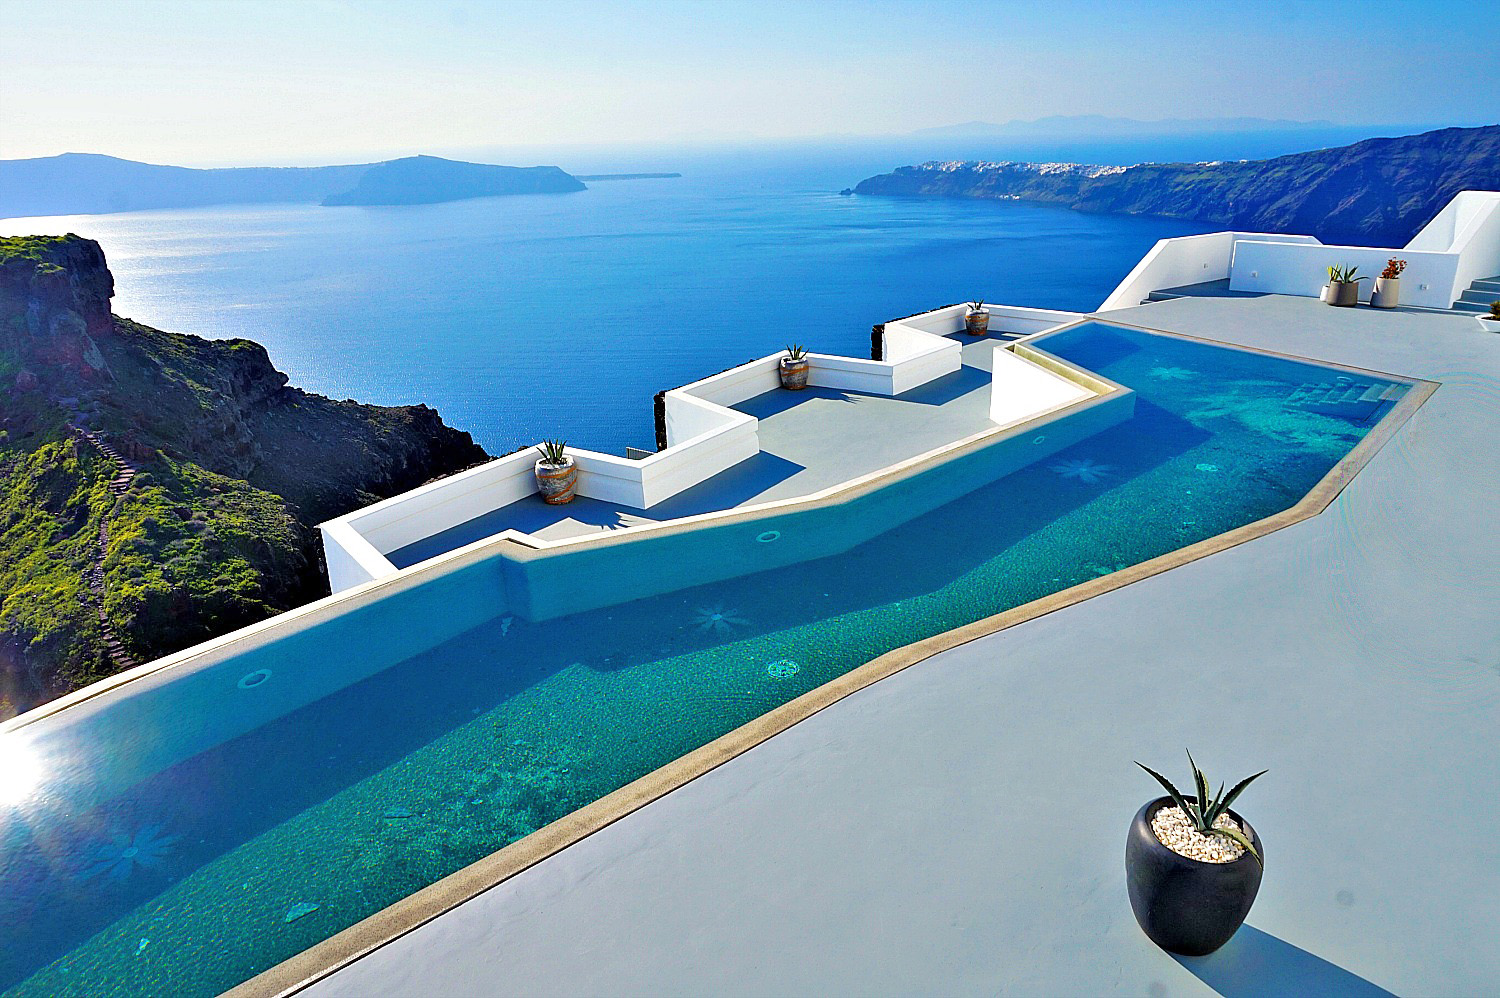 Imerovigli hotels. Grace Hotel, Auberge Resort overlooking Skaros Rock and the caldera.